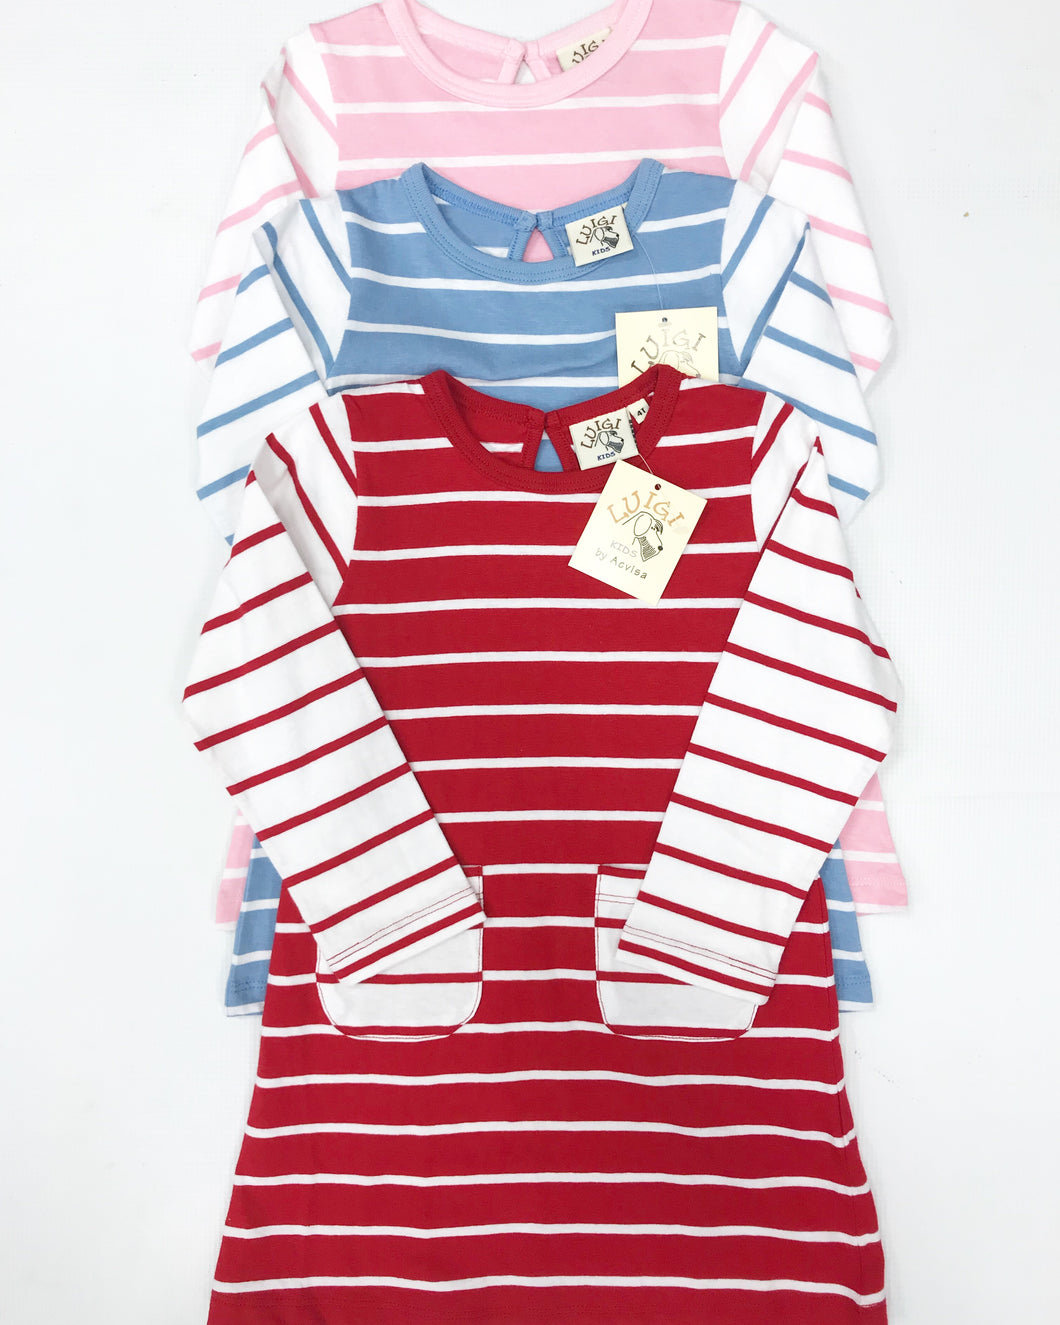 L/S Pink Stripe Dress w/ Pockets